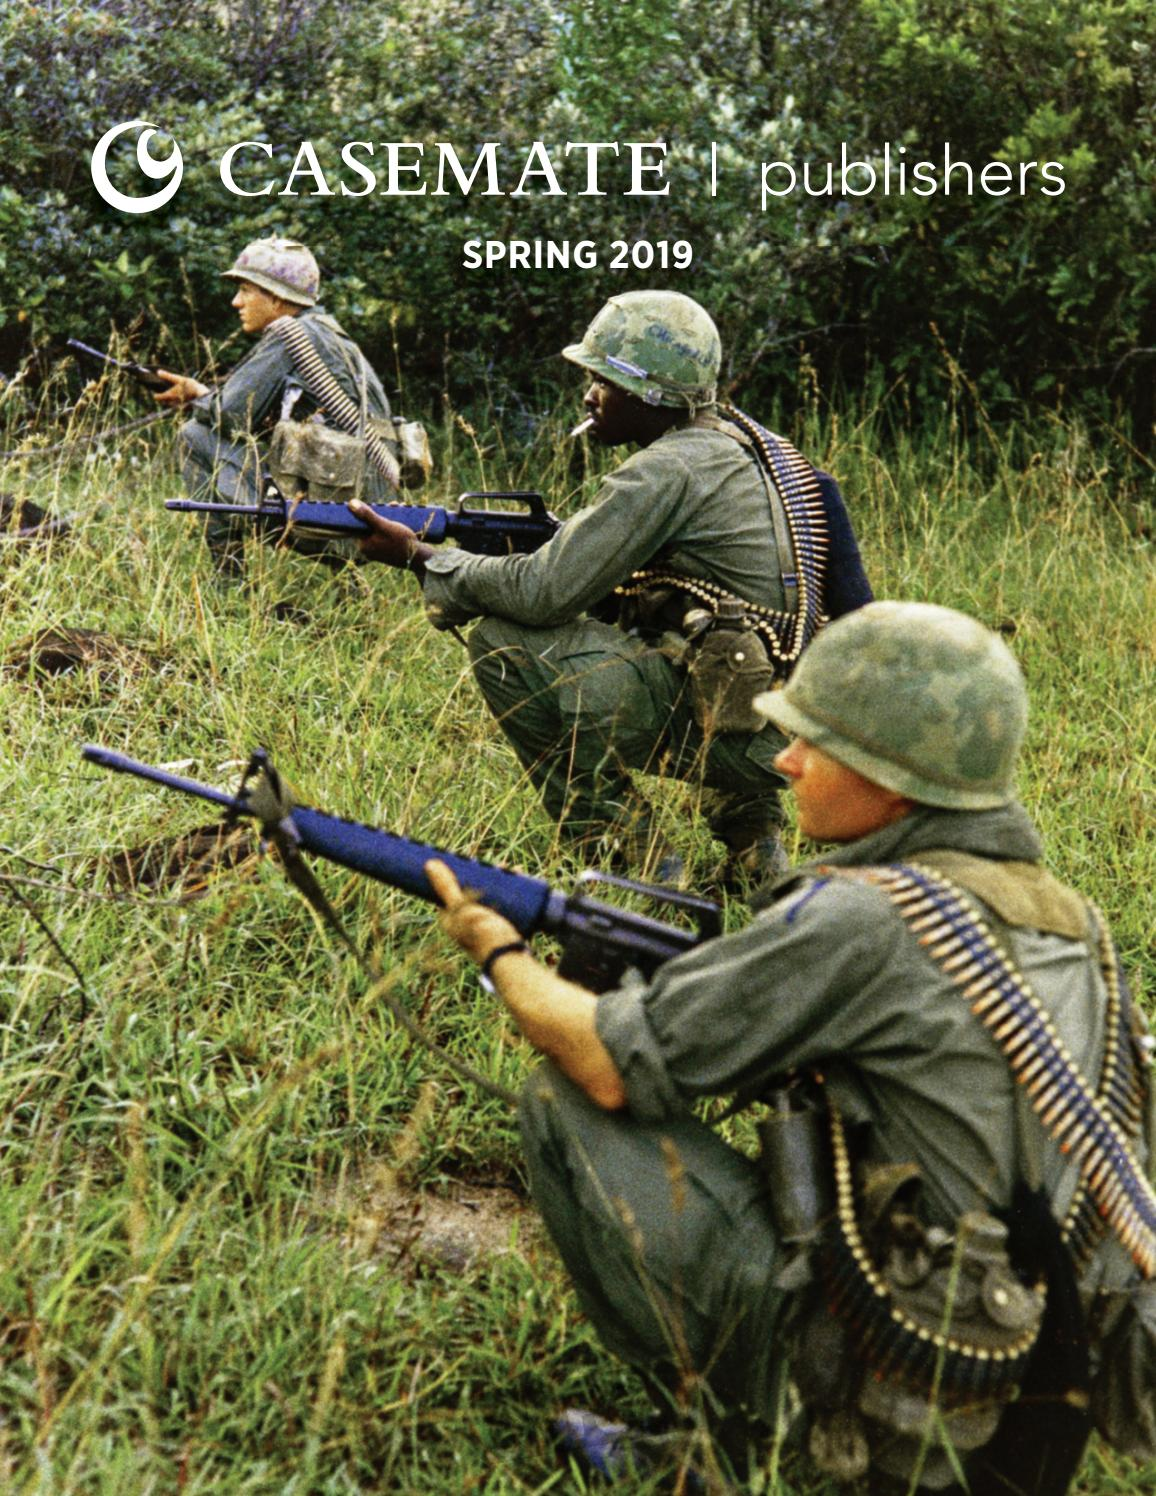 Casemate Publishers Spring 2019 Catalog by Casemate Publishers Ltd - issuu 2a9c5a03af45